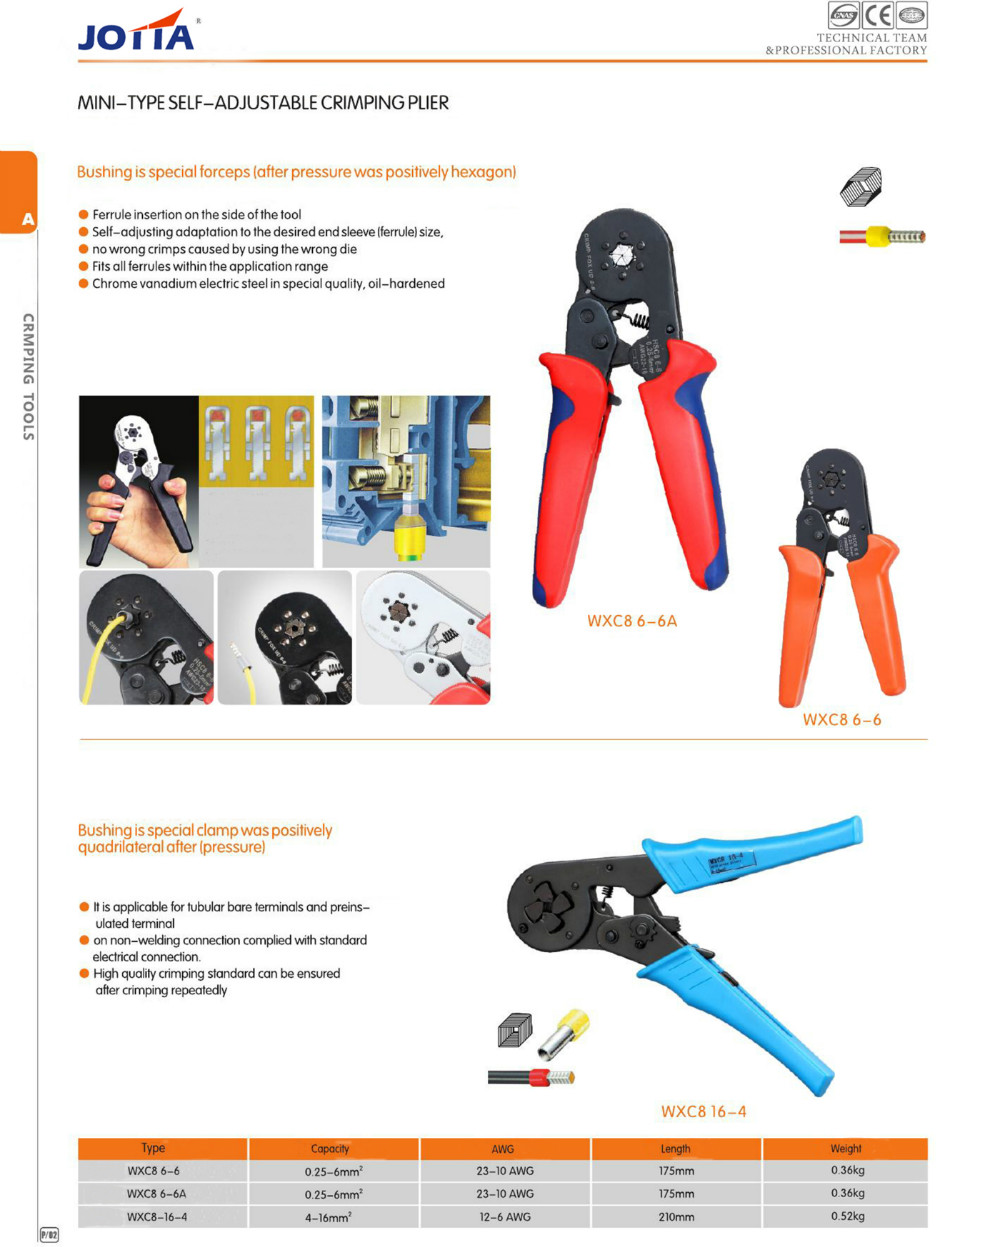 Mini Self-Adjustable Crimping Plier4 A